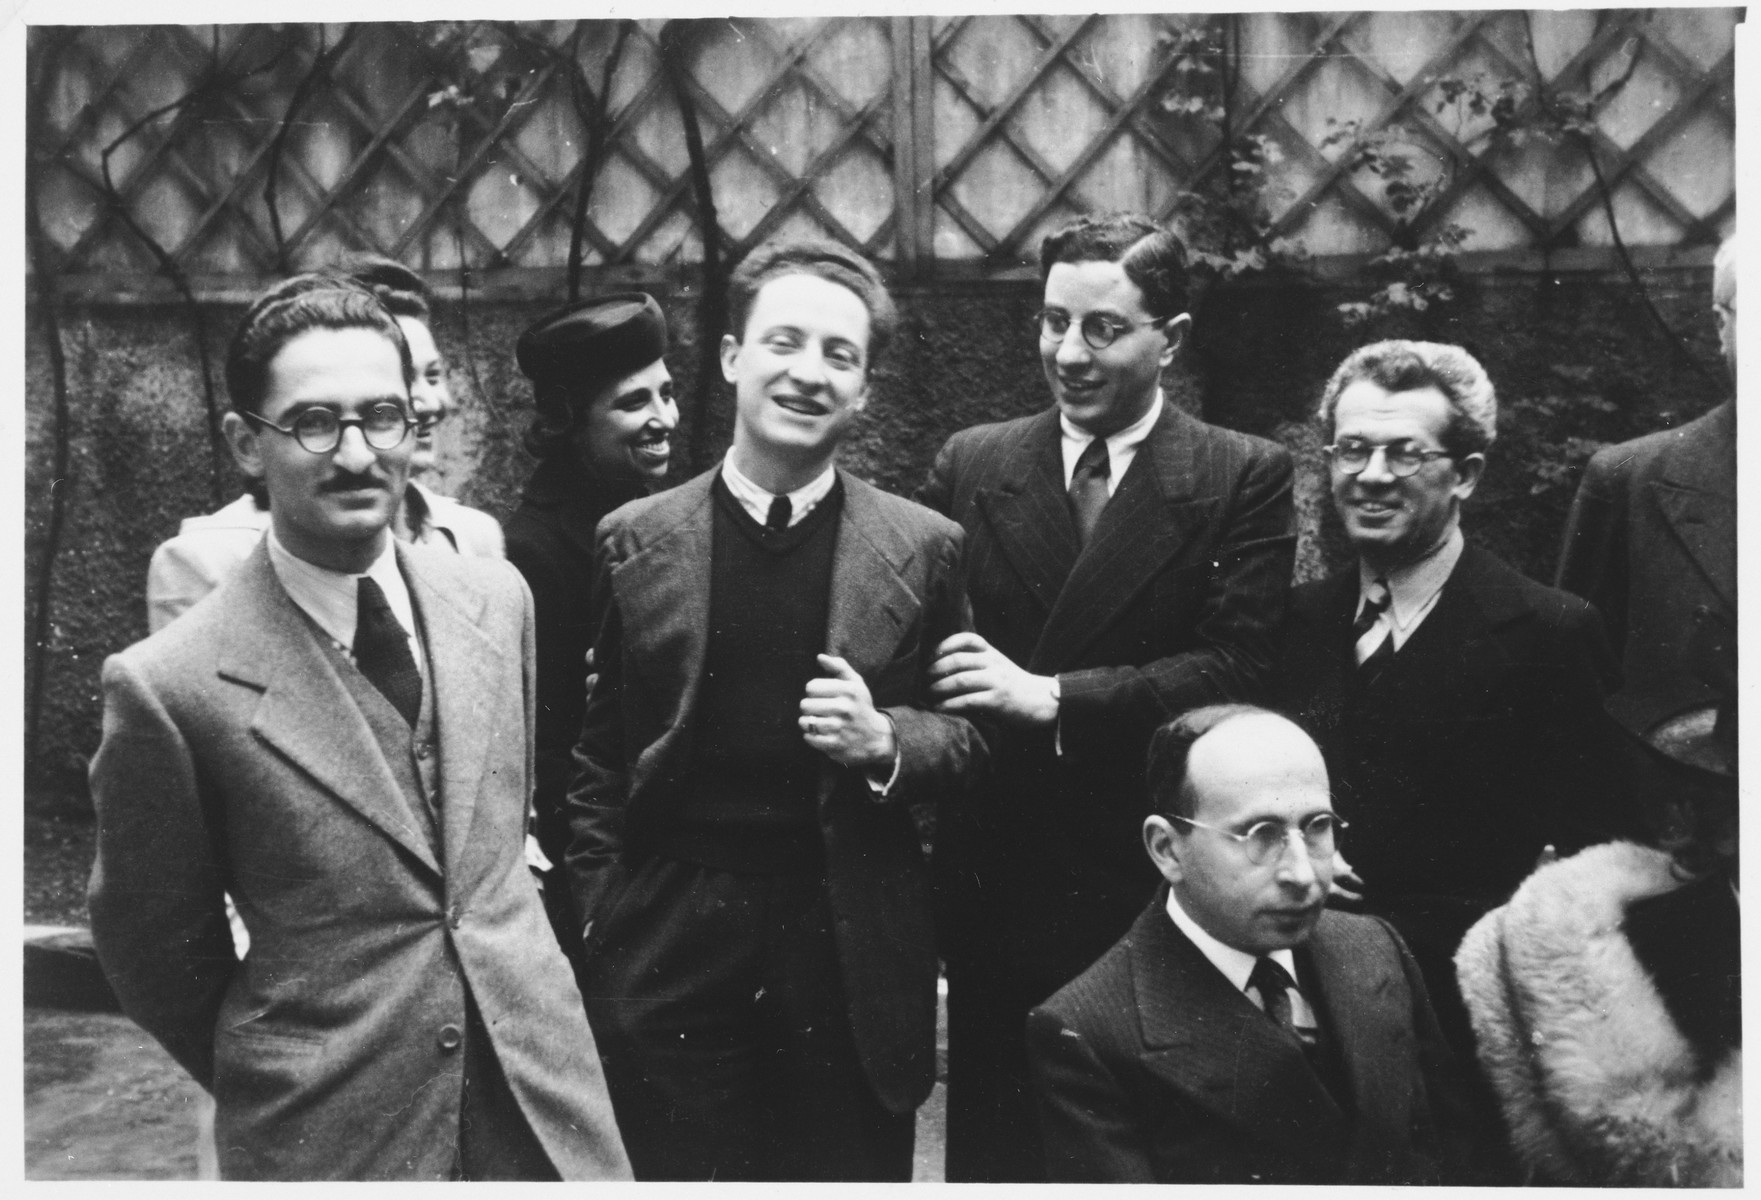 Faculty of the Jewish high school in Milan.  Included right to left are Professor Foa, Rabbi Nathan Cassuto and Professor Tedeschi, all of whom were deported to Auschwitz and perished there.  The third woman in the back (hard to see) is Marta Bernstein Navarra.  On the far left is Dr. Marcello Cantoni, the school doctor.  At the bottom right is Dr. Norsa, professor of philosophy.